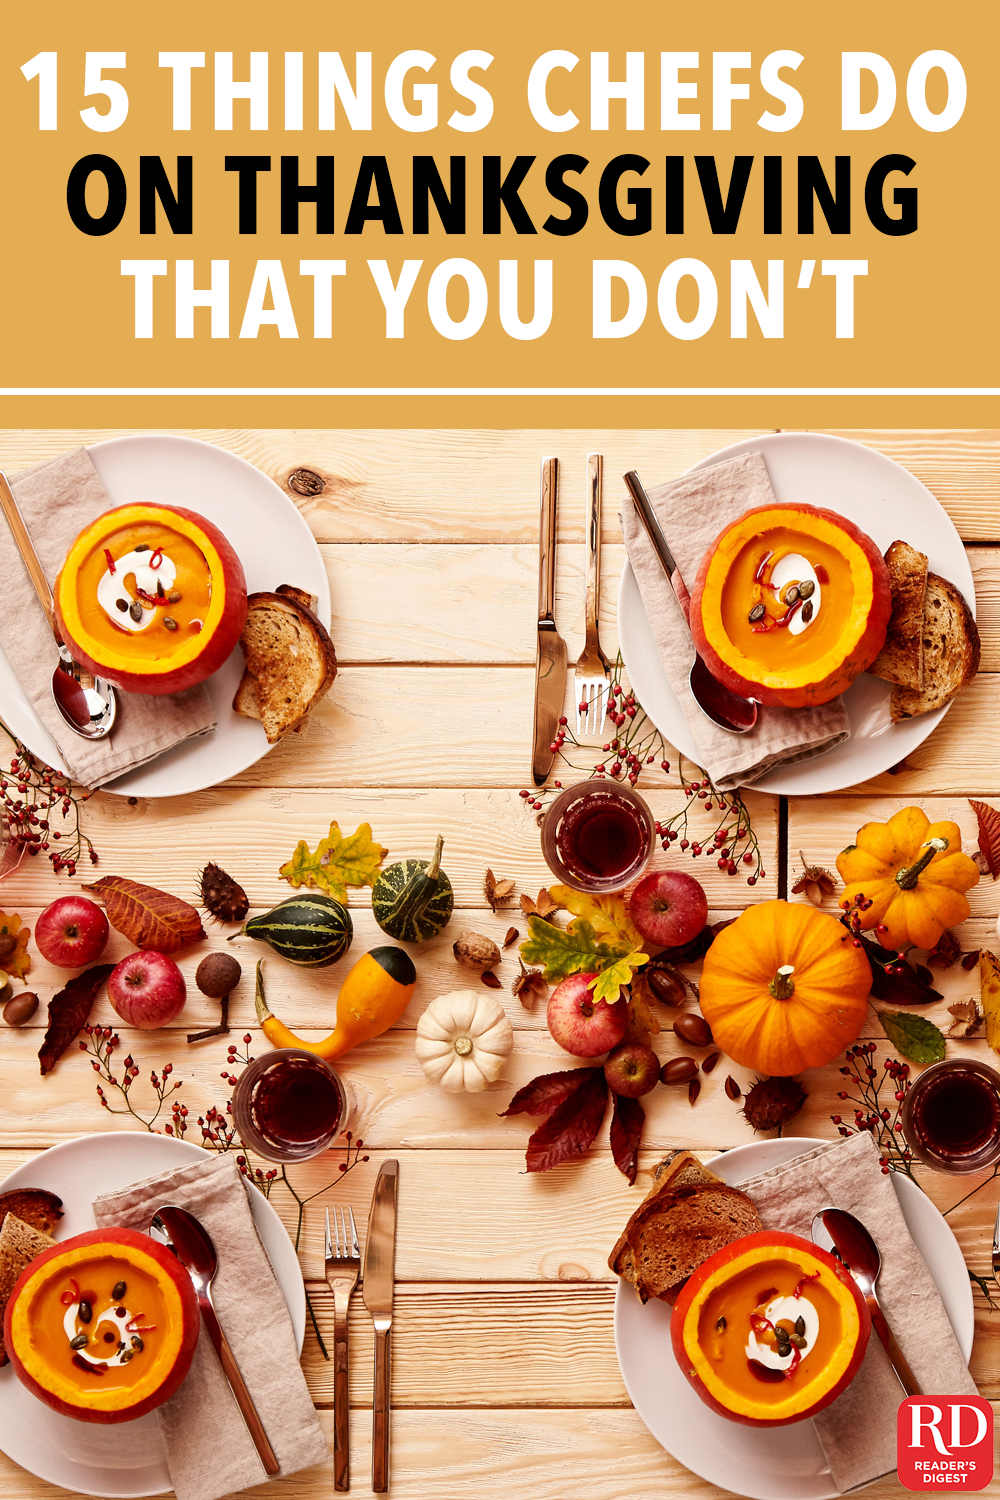 15 Things You're Probably Not Doing on Thanksgiving That a